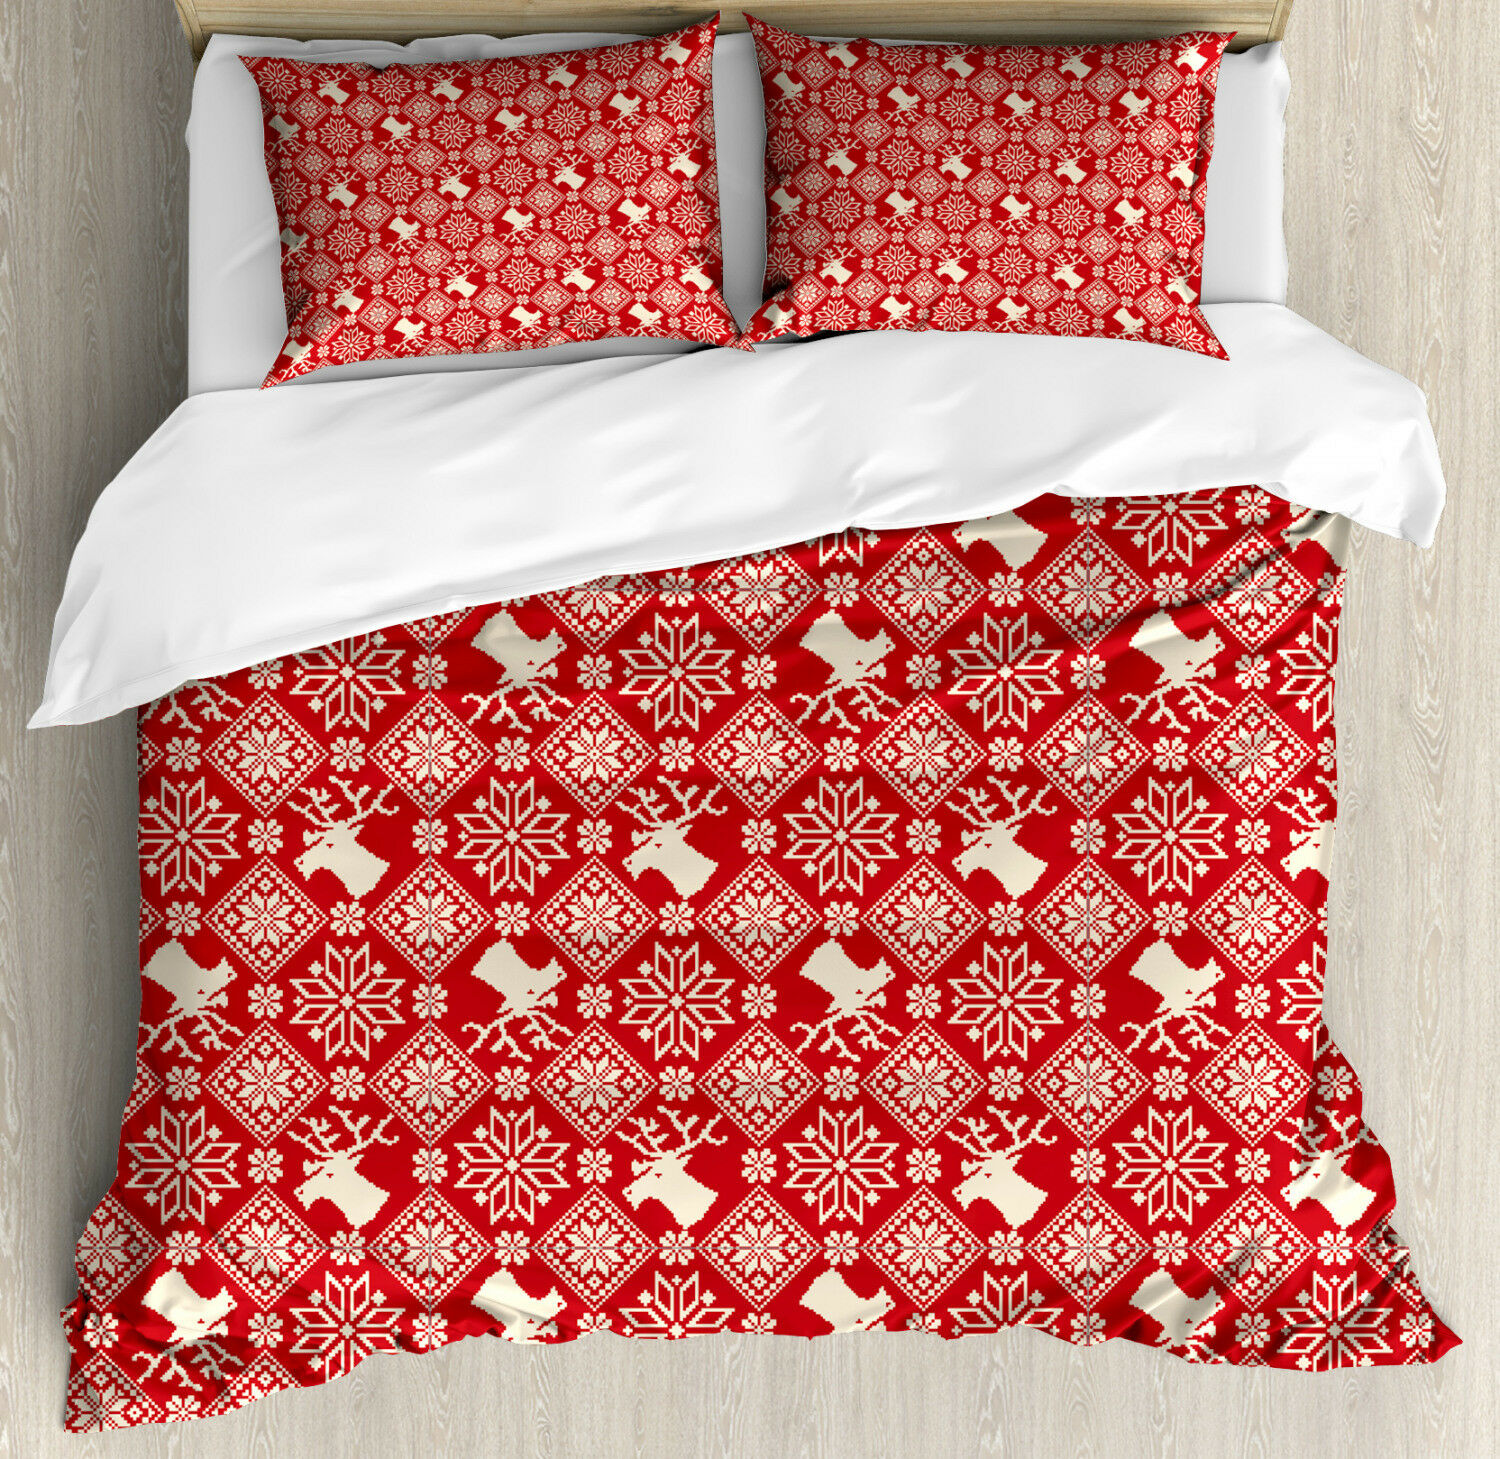 Nordic Duvet Cover Set with Pillow Shams Northern Reindeers Flora Print